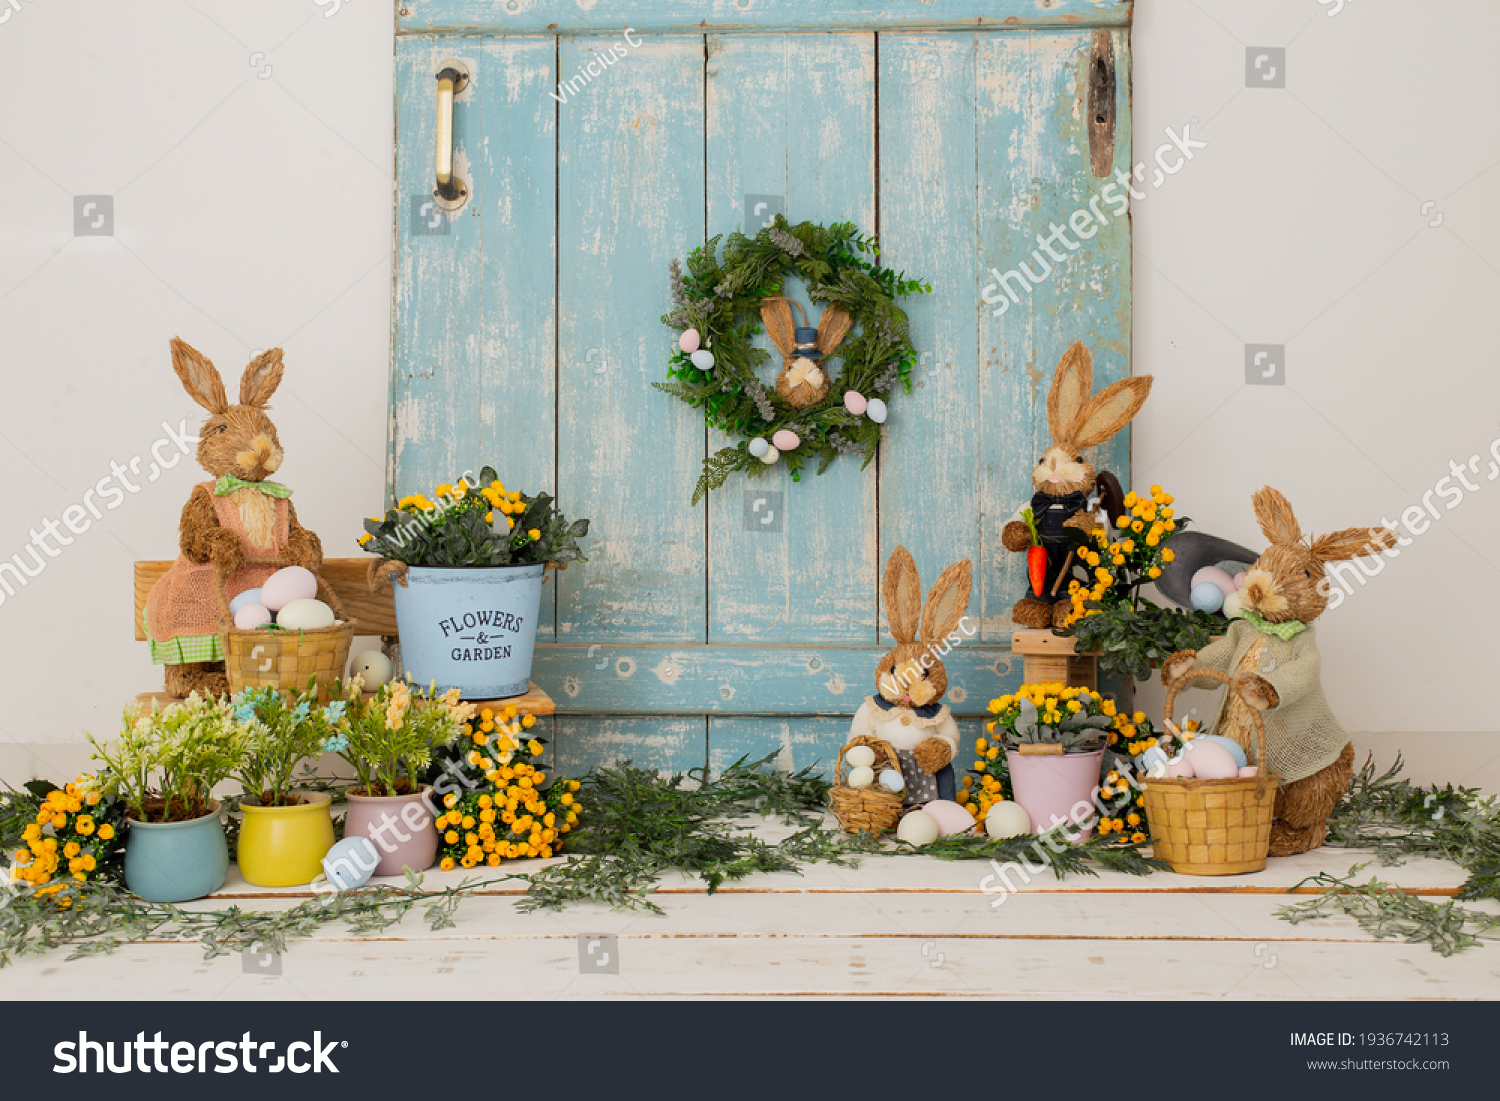 Easter backdrop or background for photo mini session in blue color. Contains straw rabbits and eggs basket. #1936742113